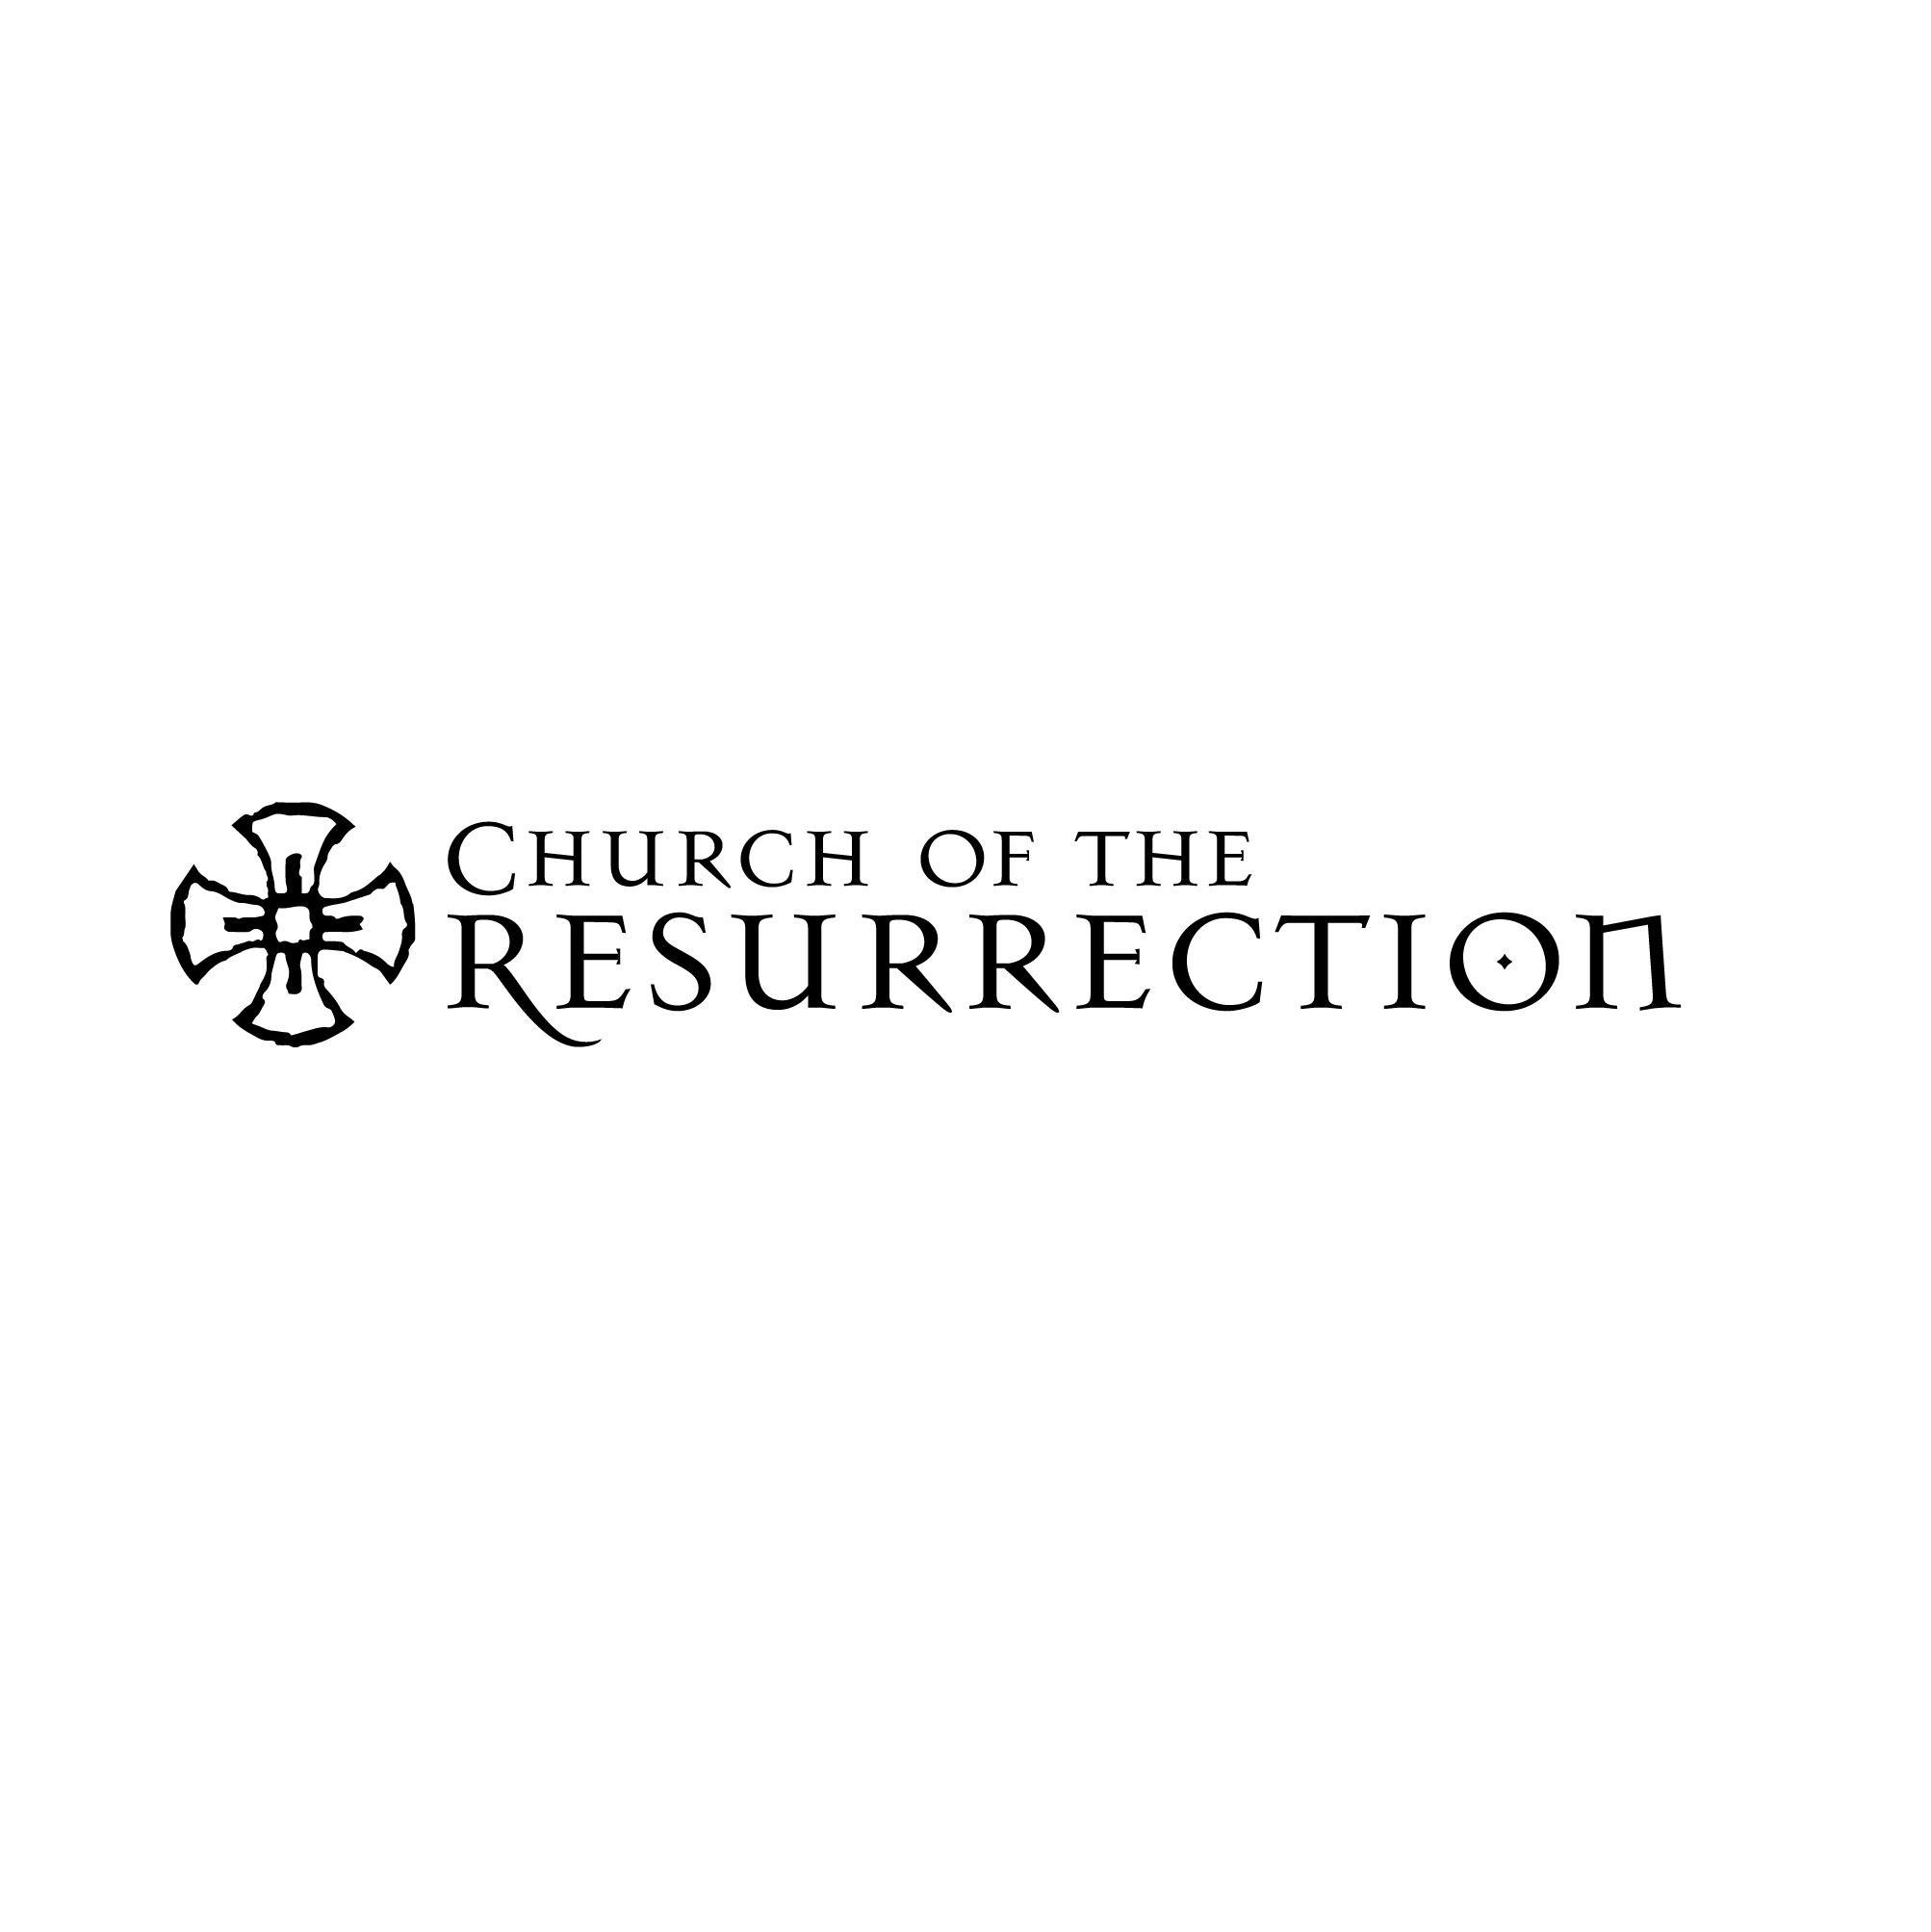 Church of the Resurrection Black.png